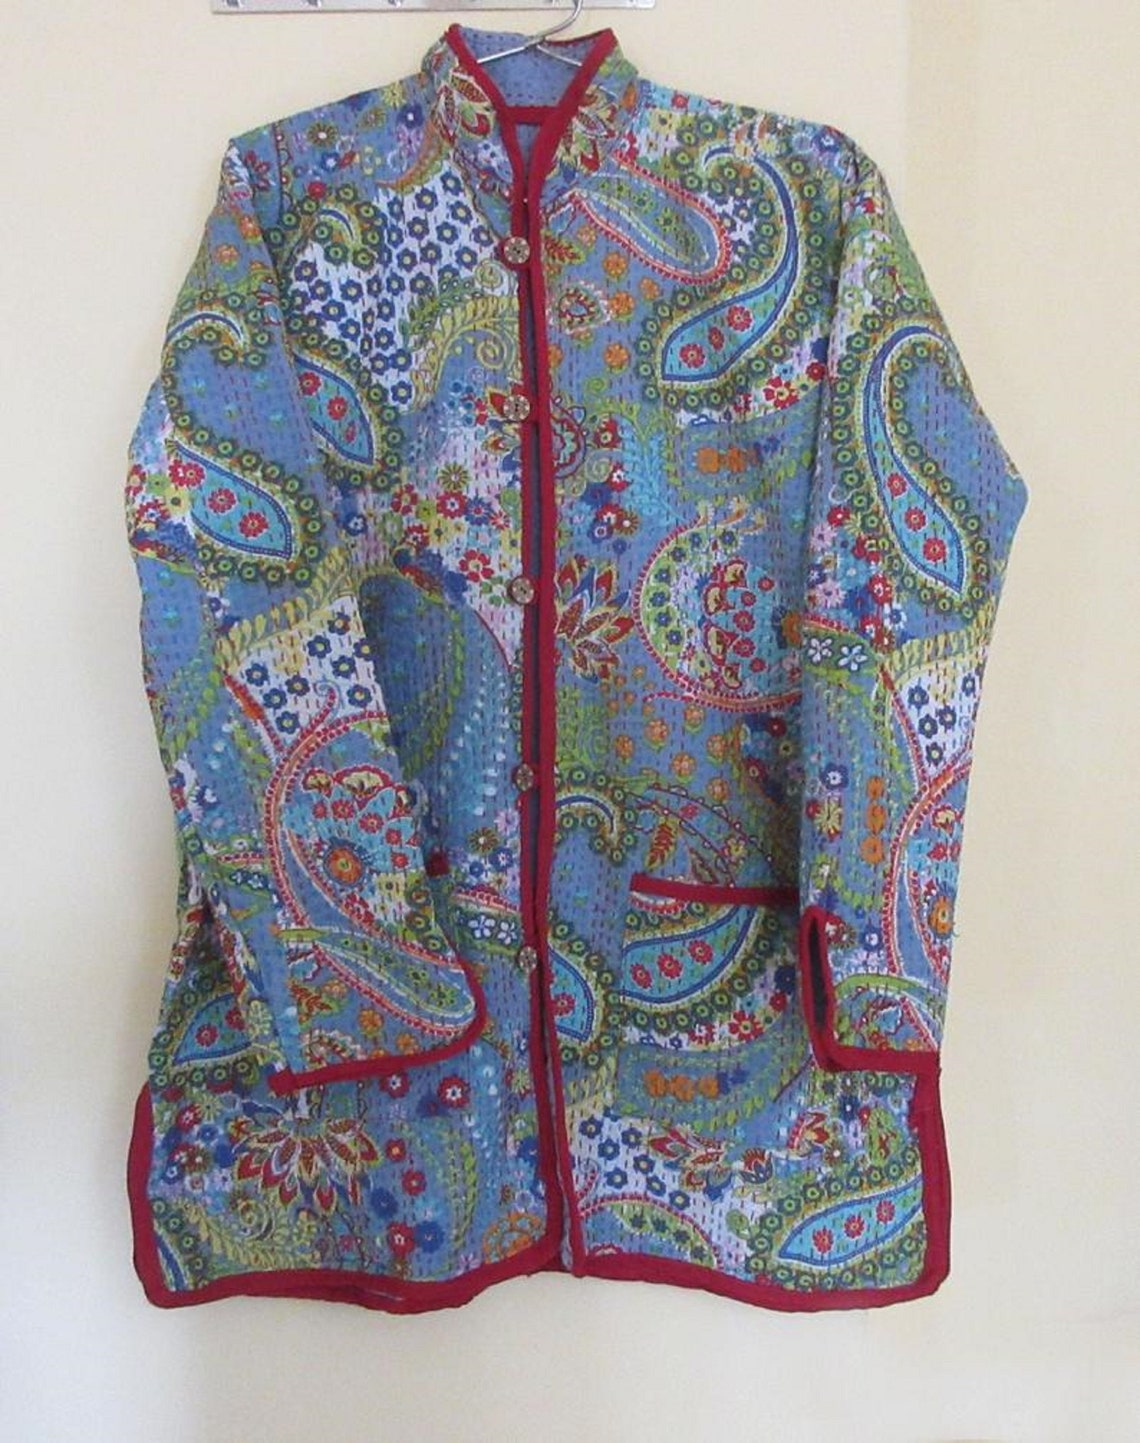 100% Cotton Paisley Print Indian Handmade Women Jacket Coat Throw Ethnic Kantha Work Girl's Turquoise Color With Full Sleeves